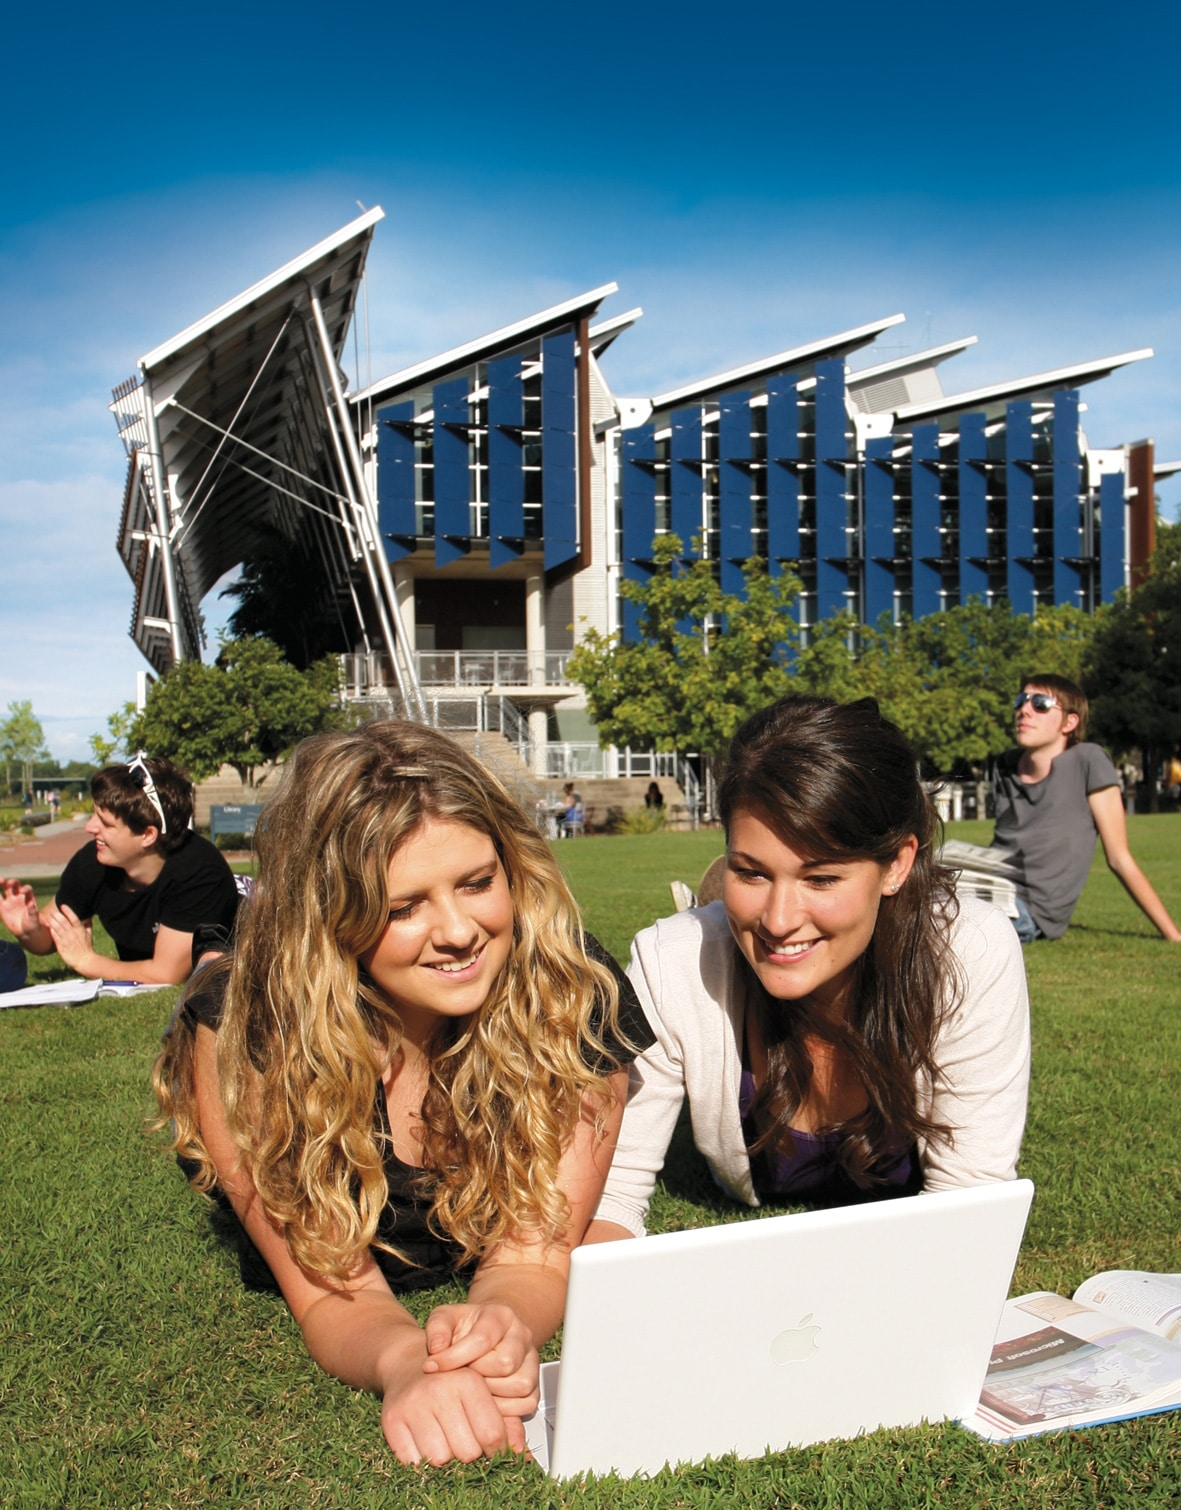 university-of-the-sunshine-coast-campus